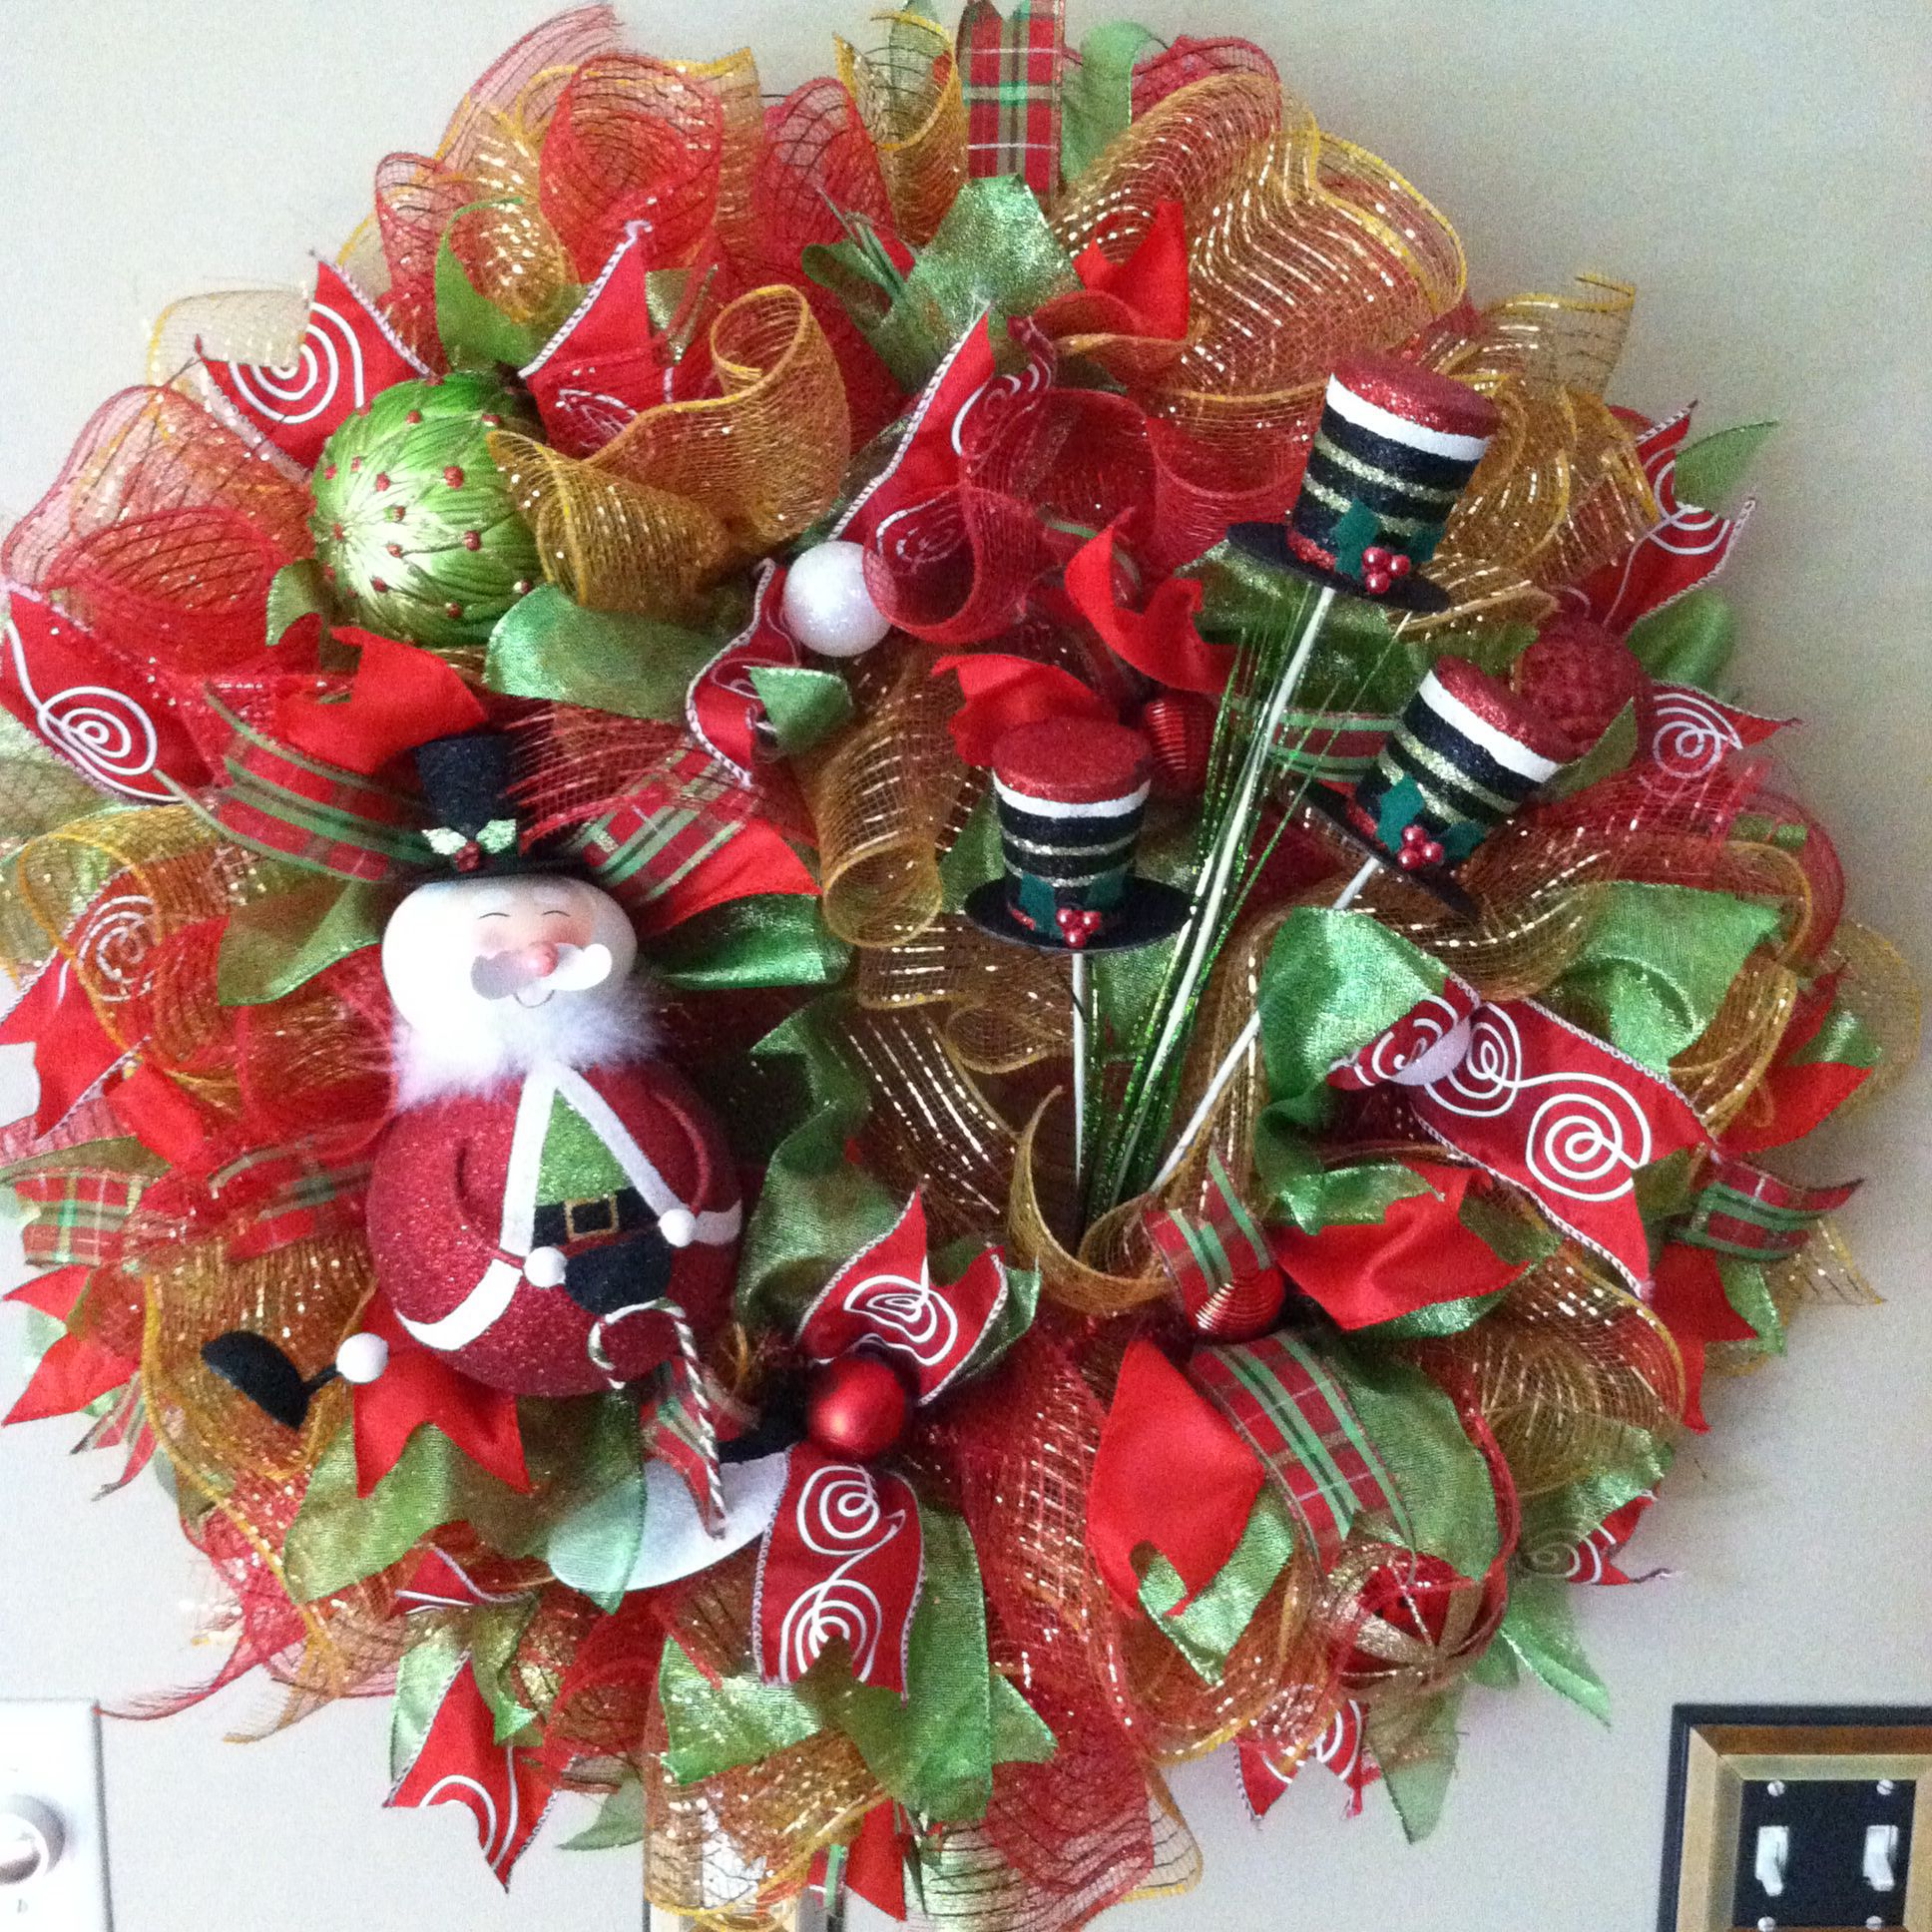 Home Decoratingtips: Christmas Wreath. $79.00 Check It Out On Baywreathdesigns